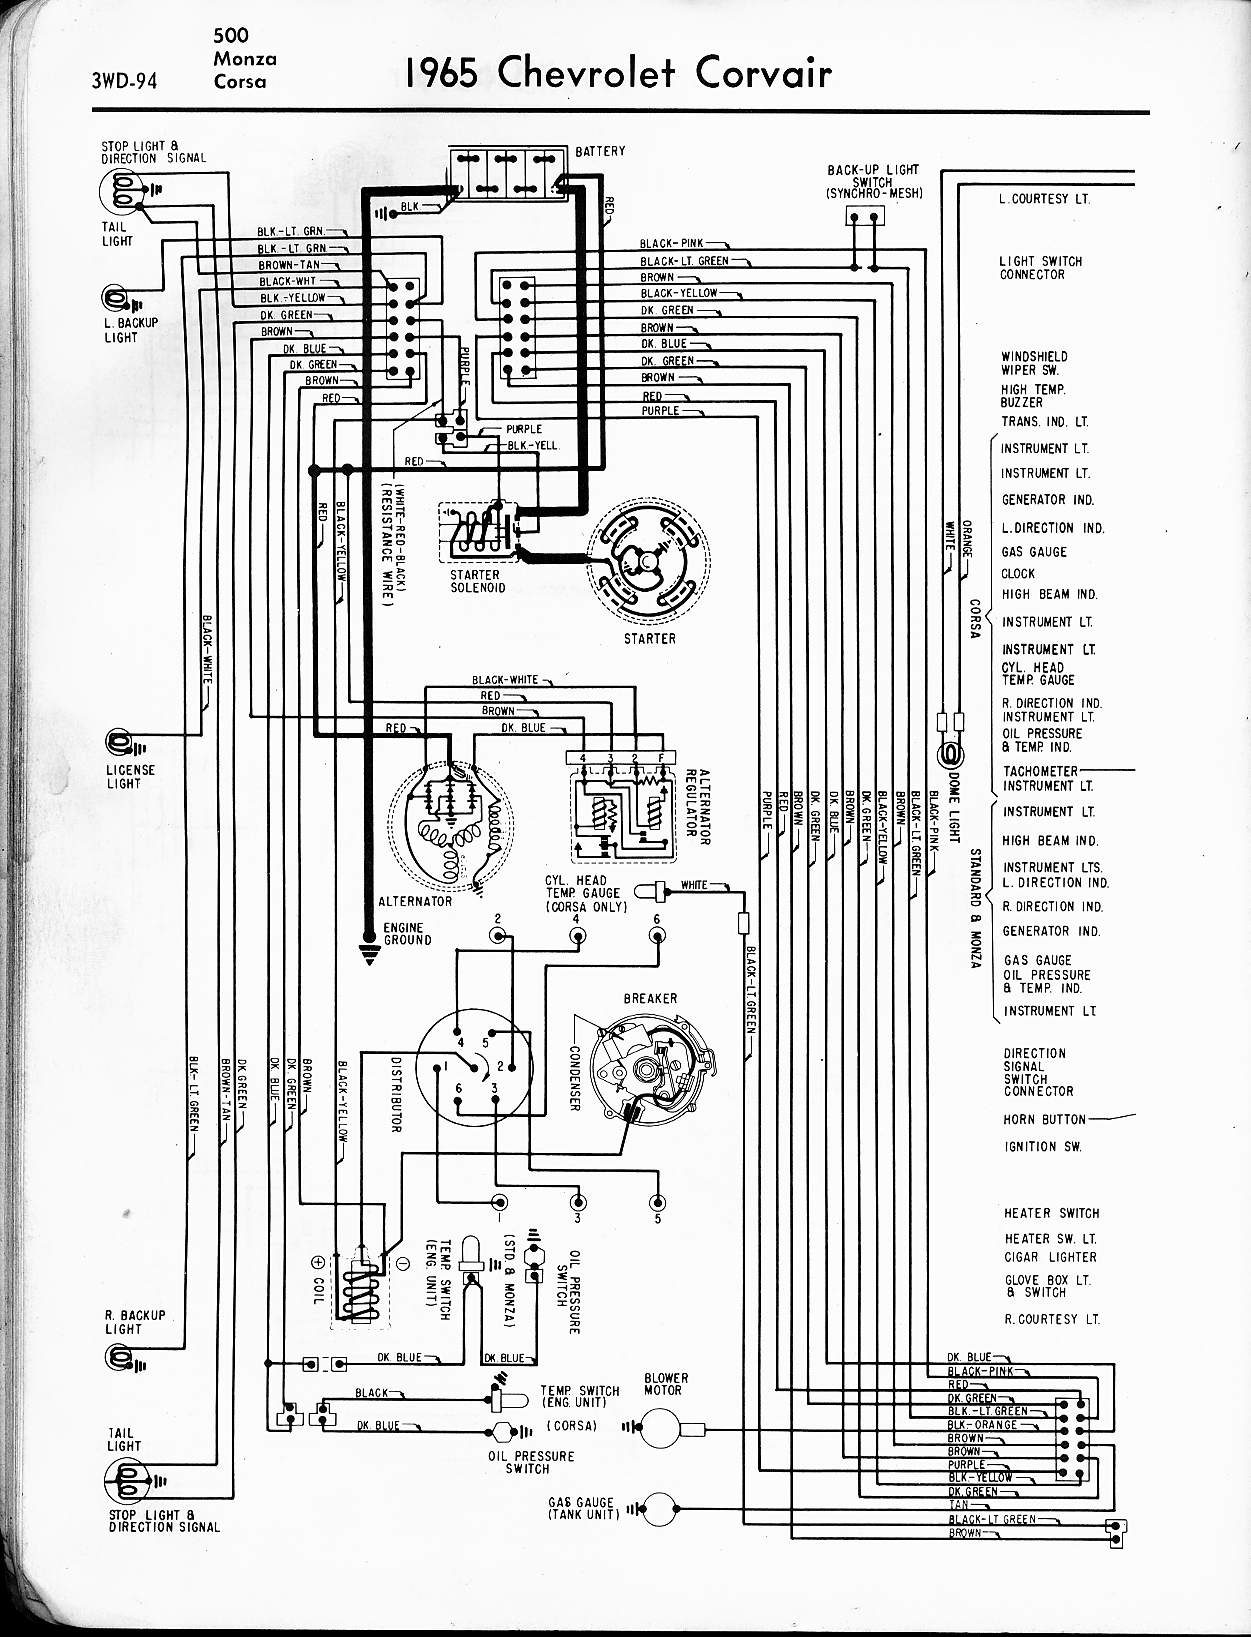 Wrg Wiring Diagram For Chevy Monza Fuel Pump